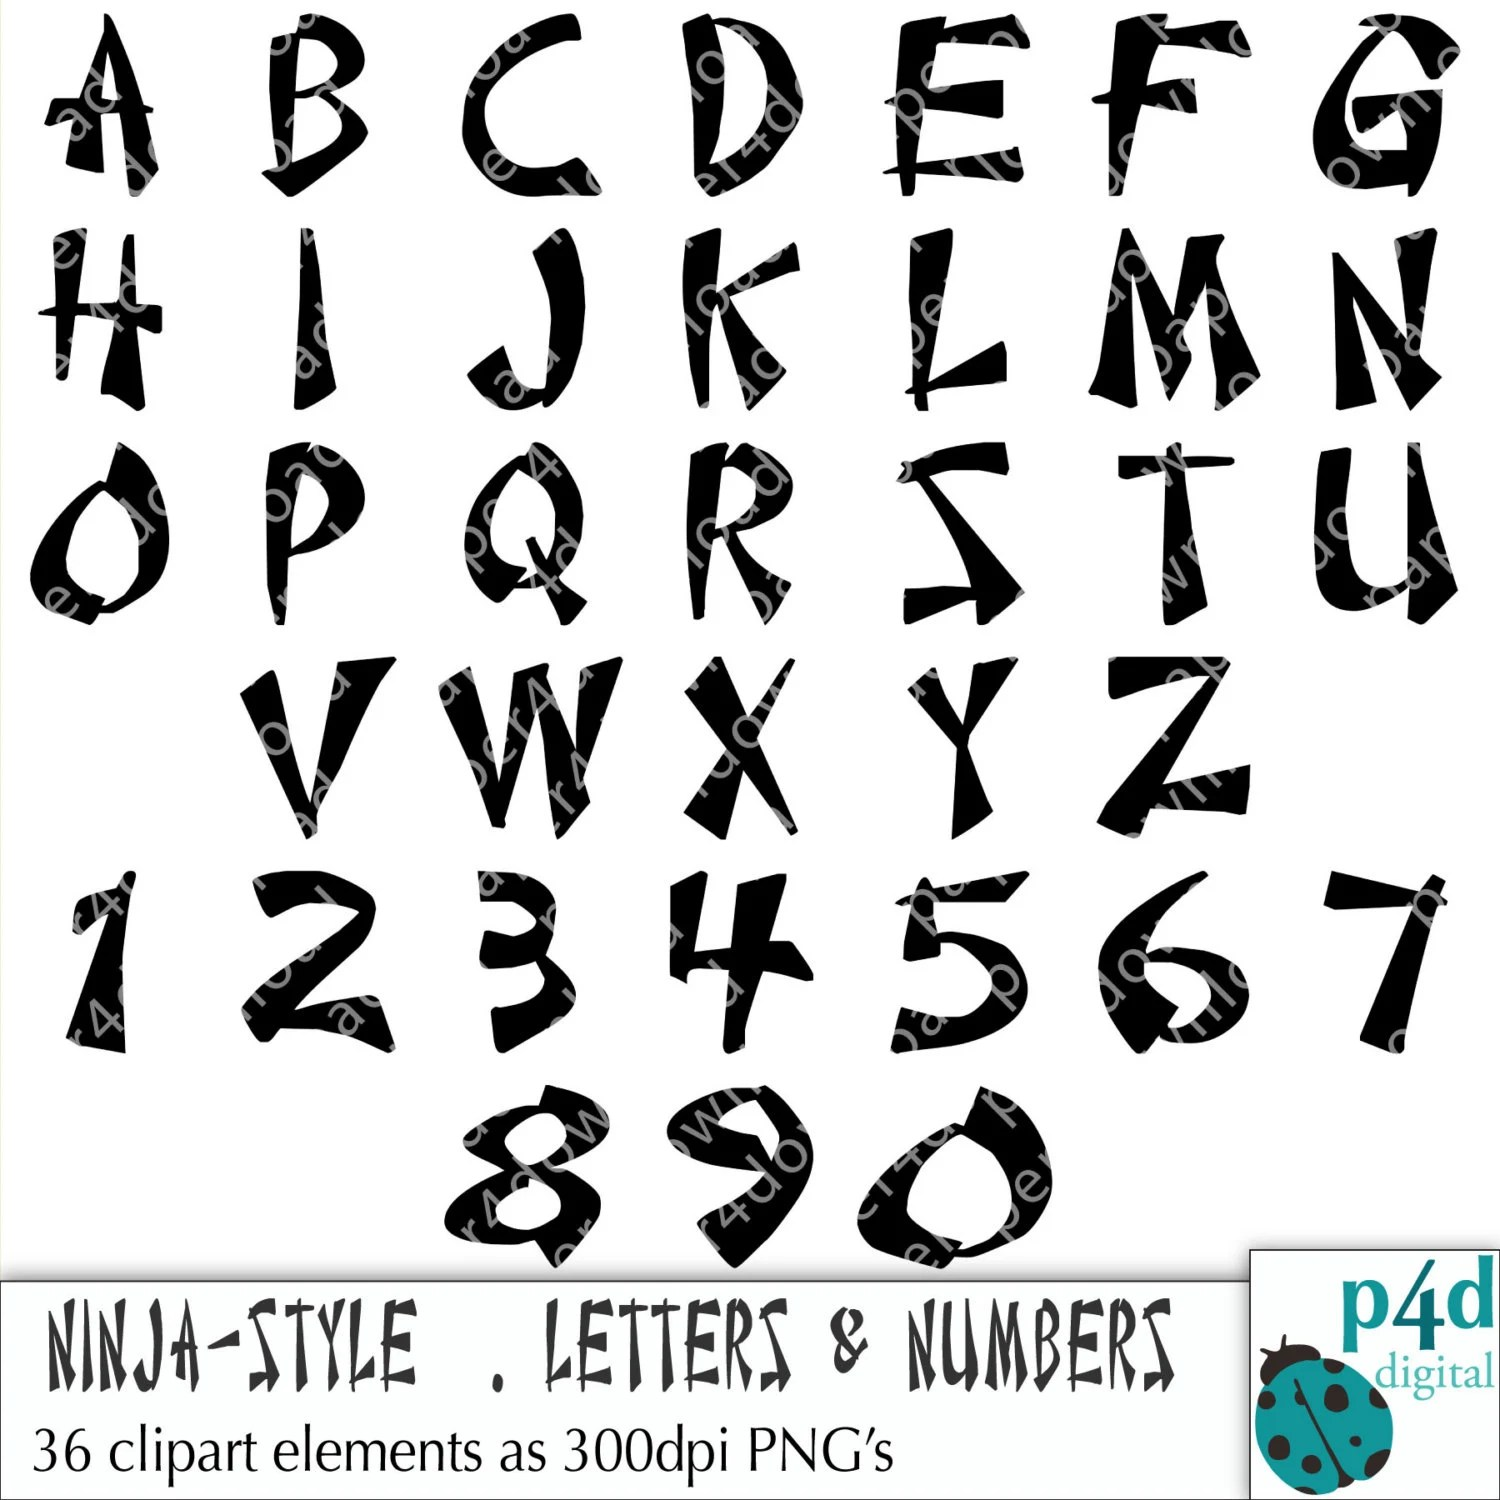 Alphabet 36 Ninja Style Letters And Numbers Clipart